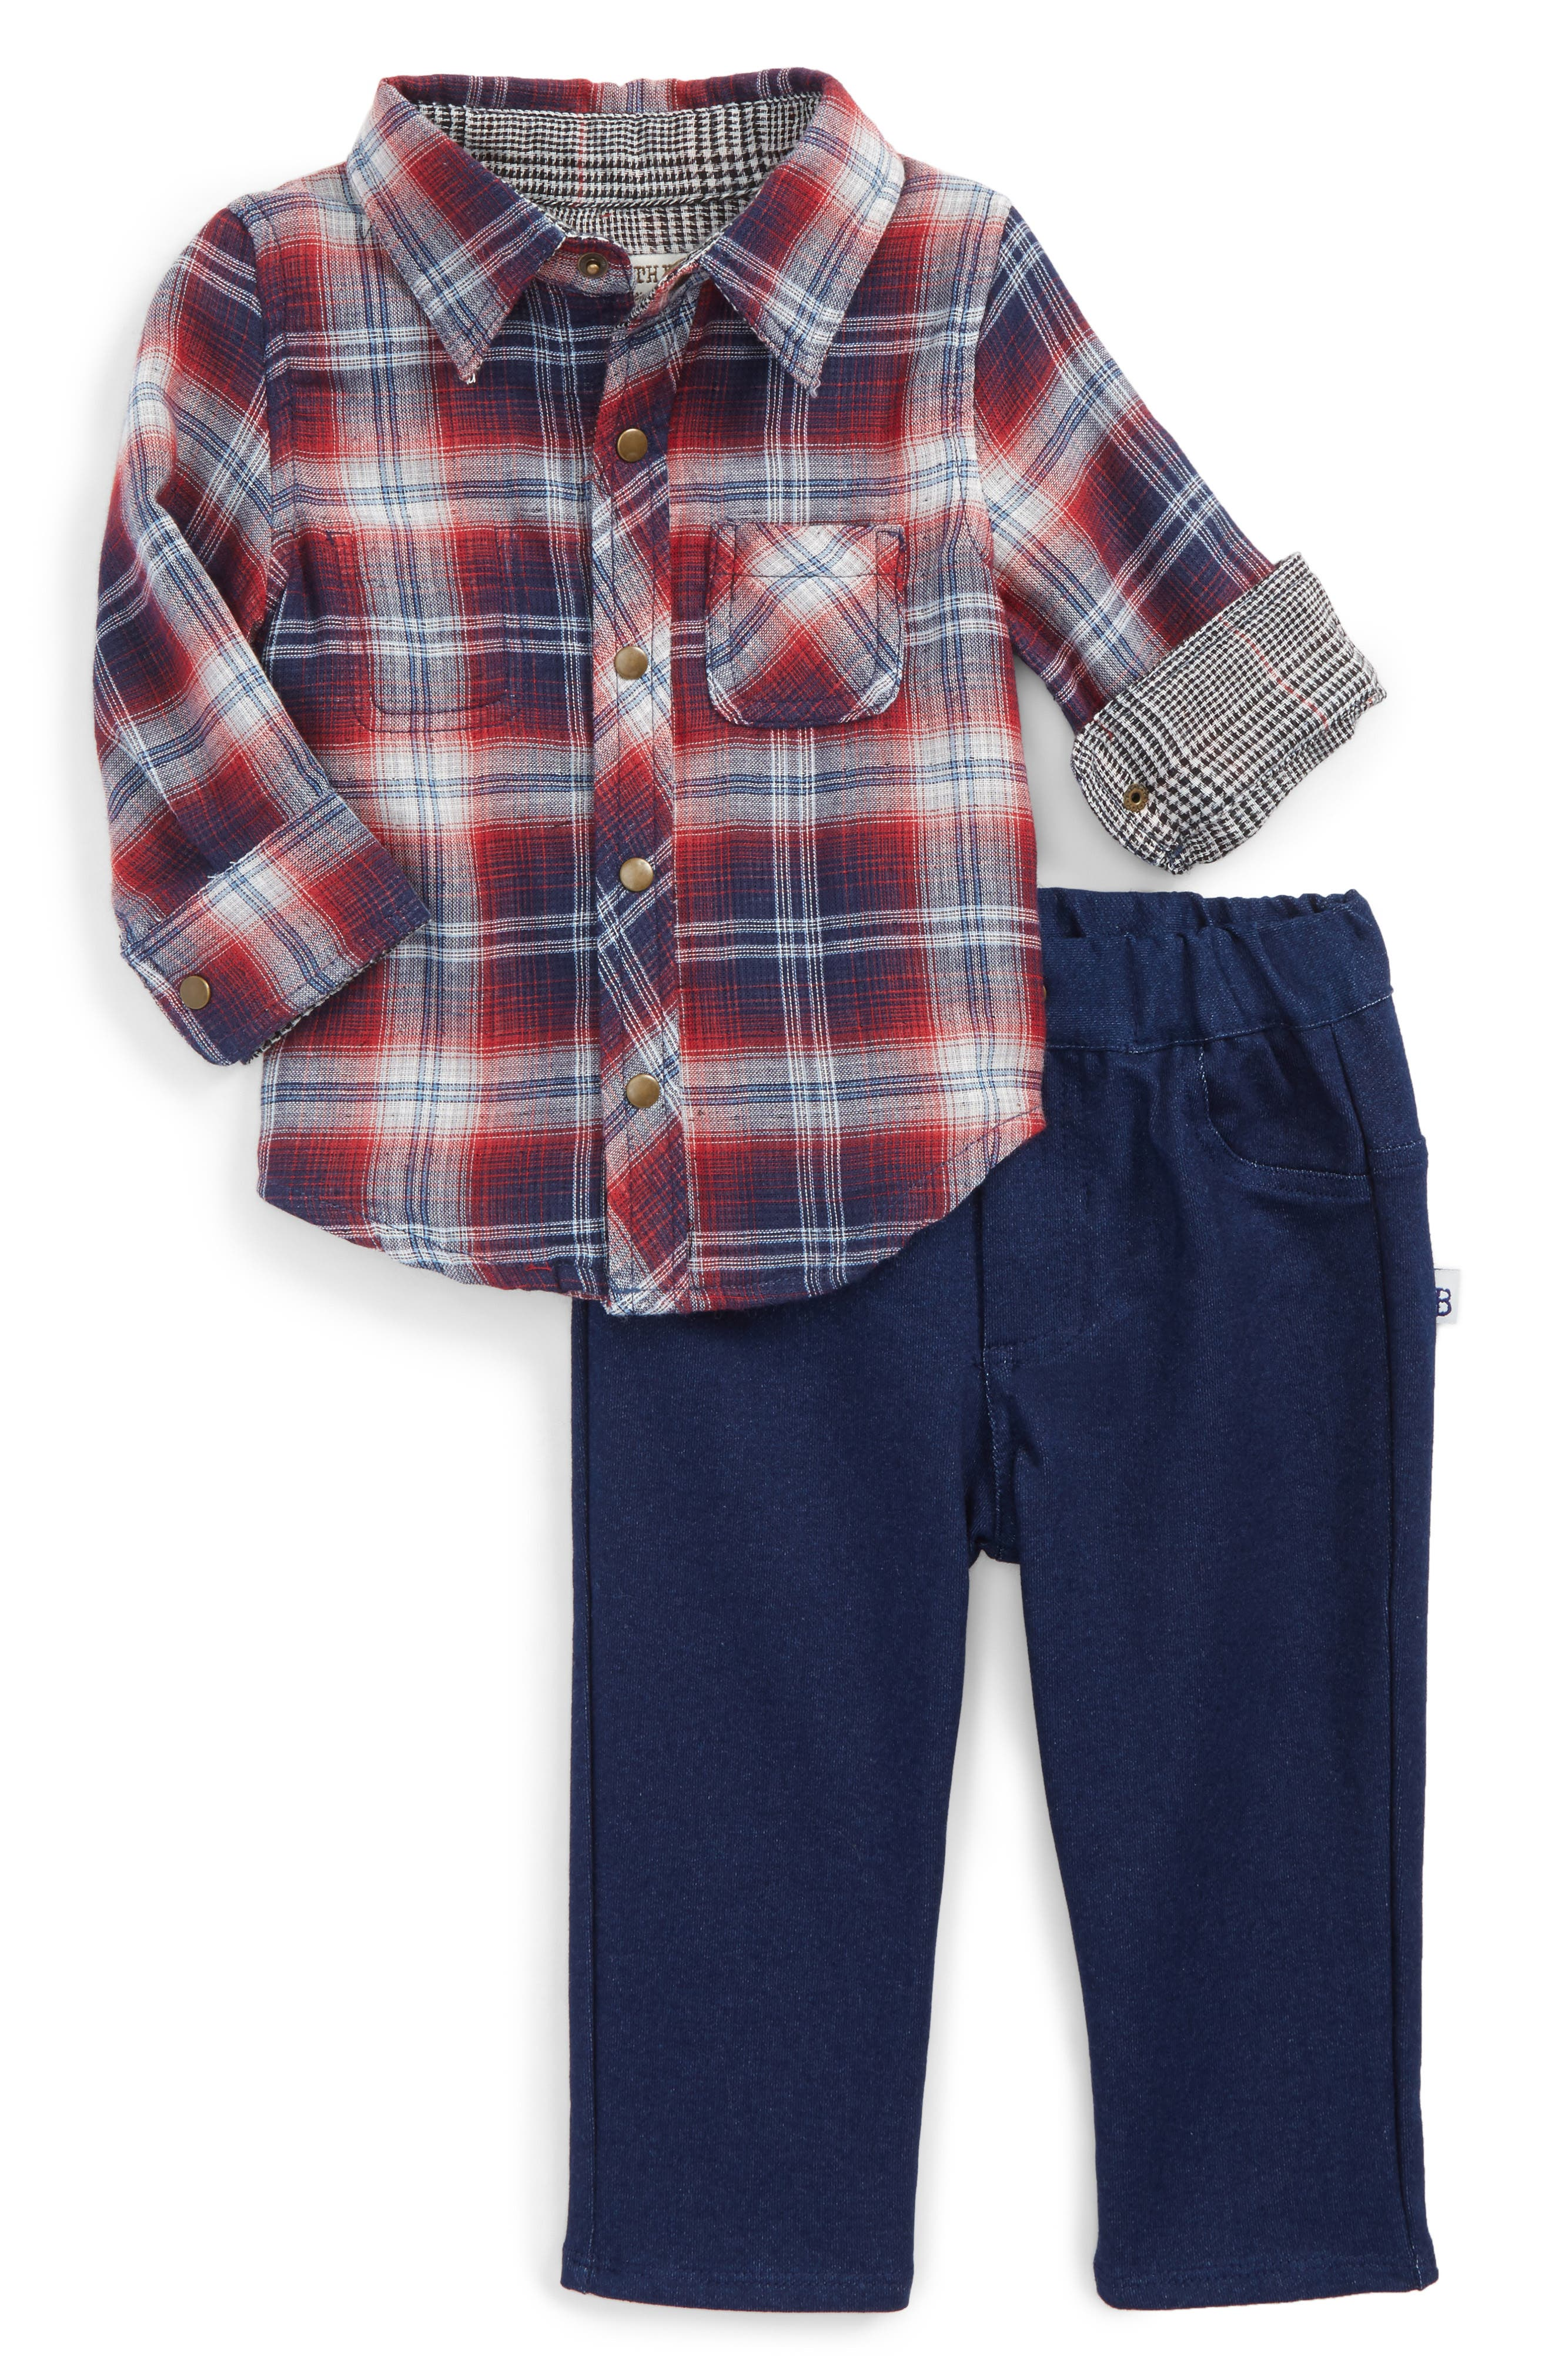 Little Brother by Pippa & Julie Reversible Woven Shirt & Pants Set (Baby Boys)